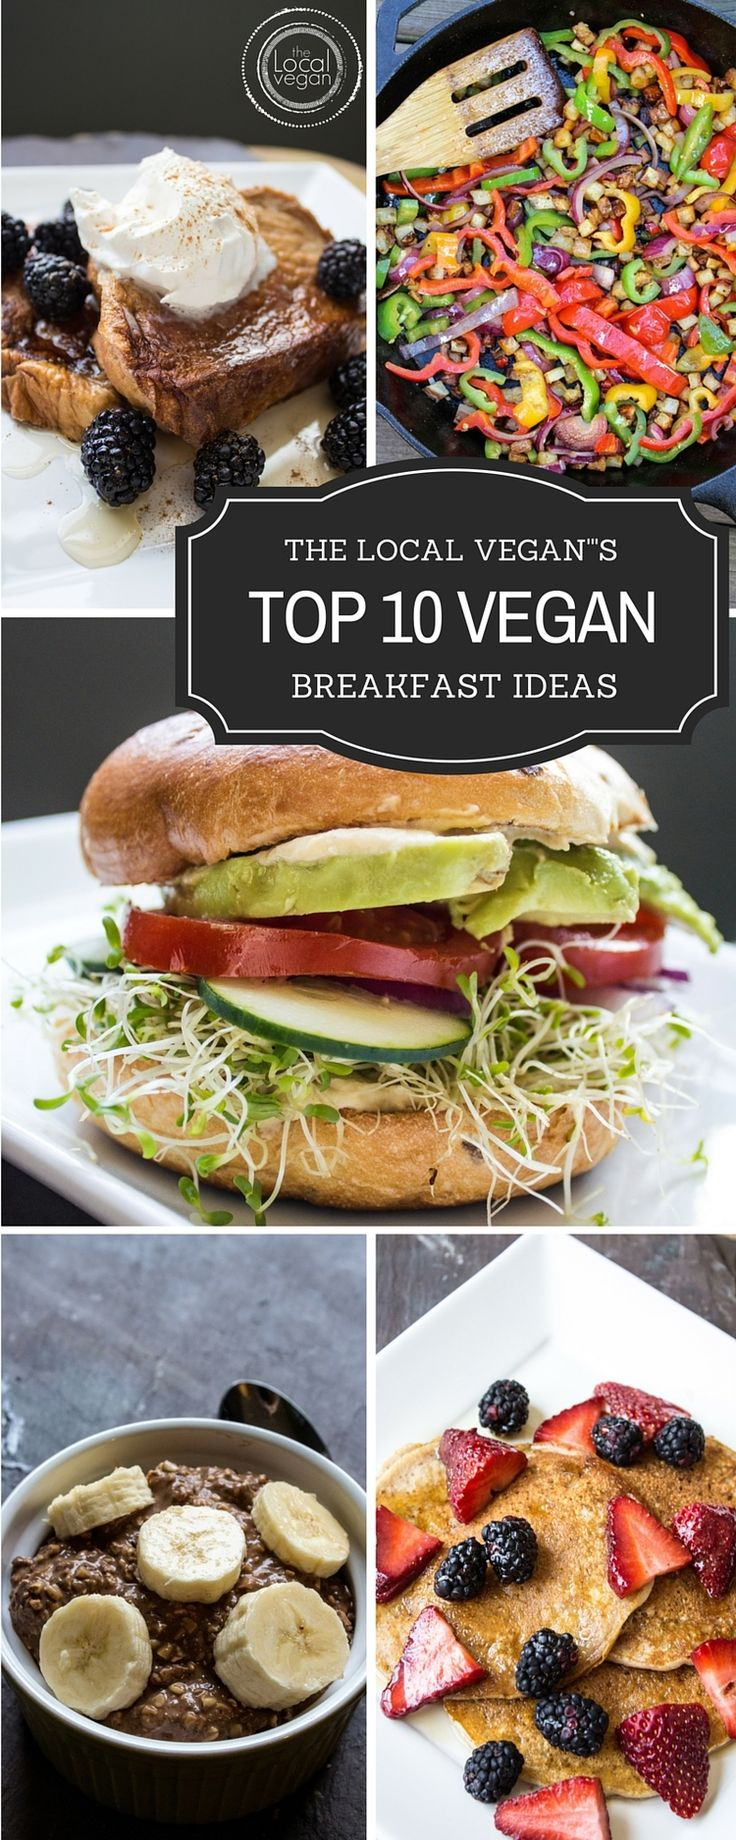 Top 10 Vegan Breakfast Ideas — The Local Vegan Healthy #Vegan Breakfast / Brunch Recipes - #plantbased #cleaneating